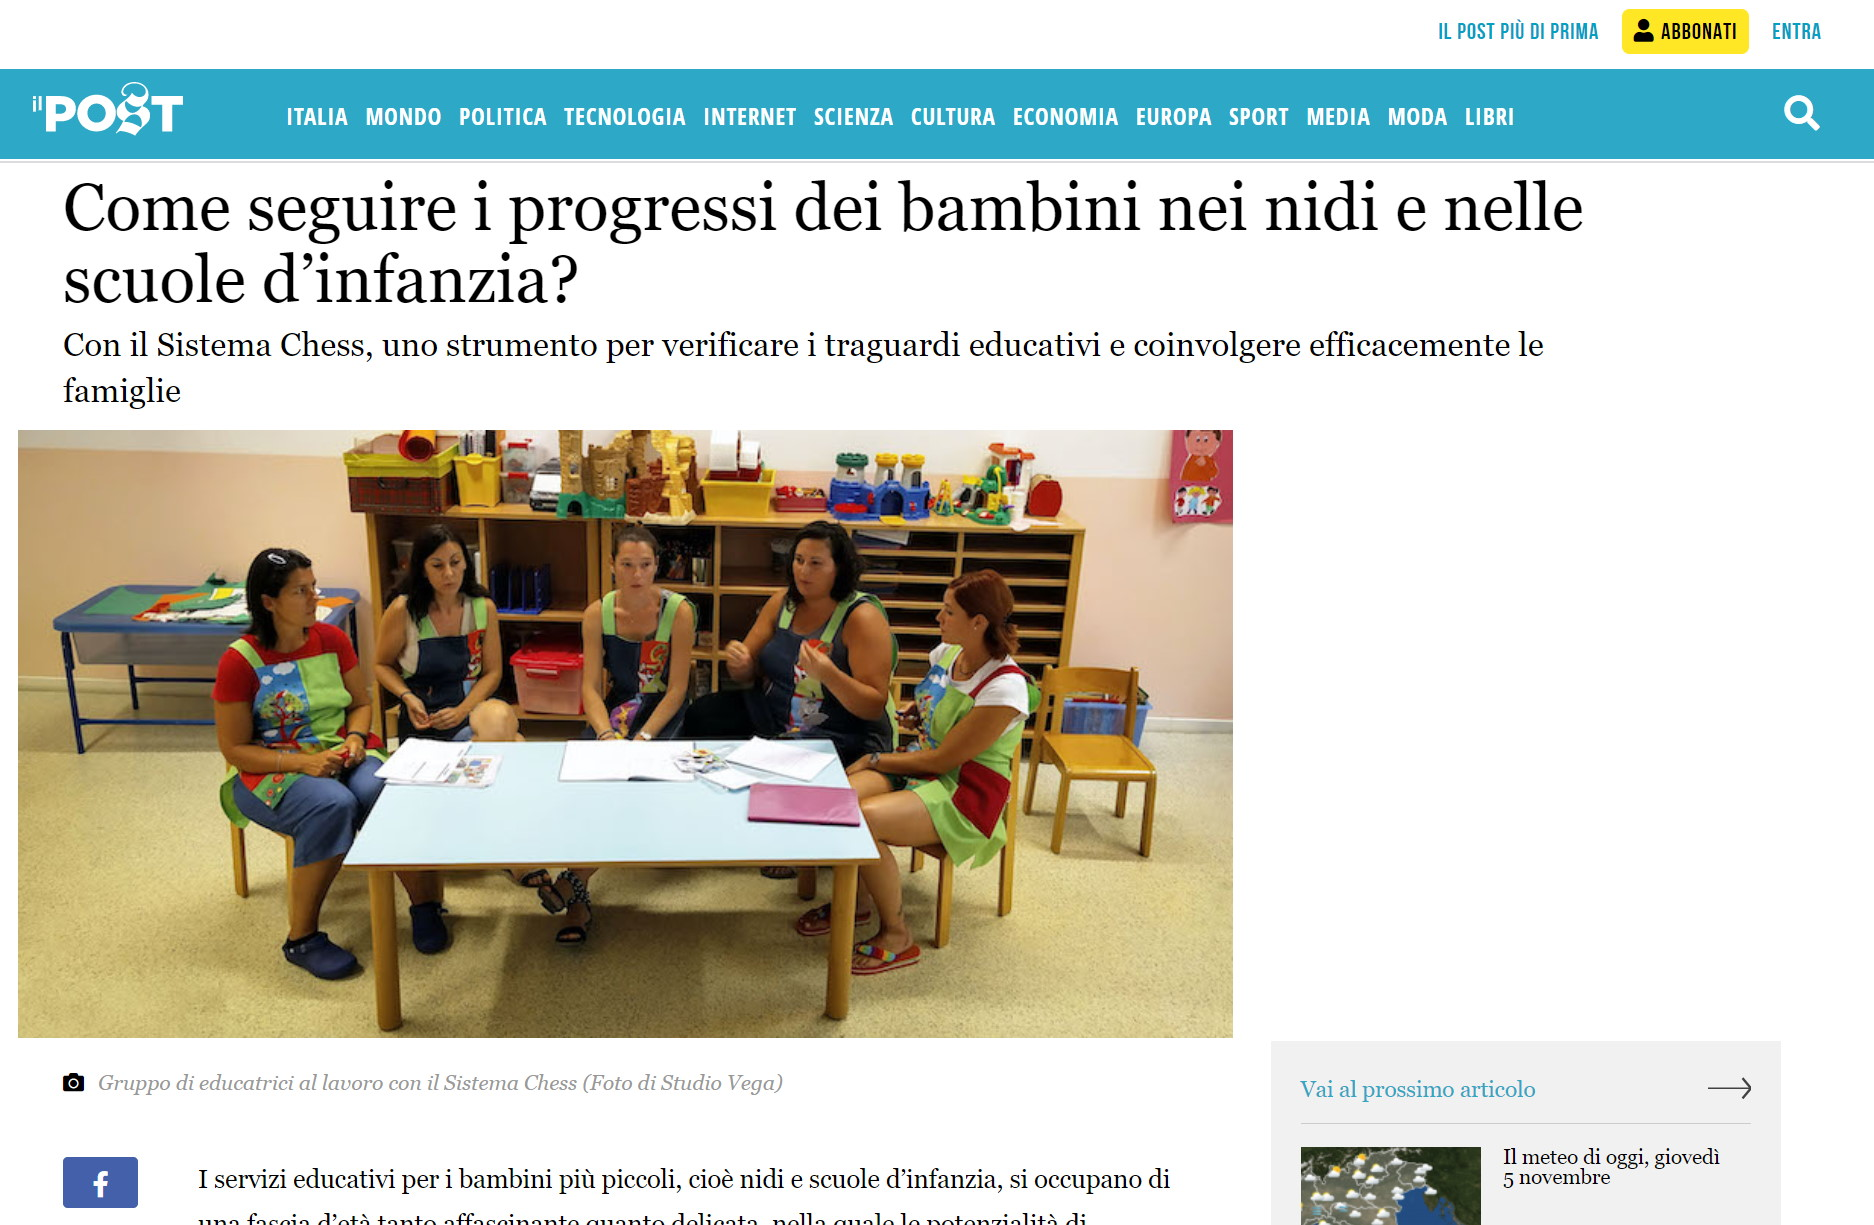 Il quotidiano online Il POST parla di Sistema Chess